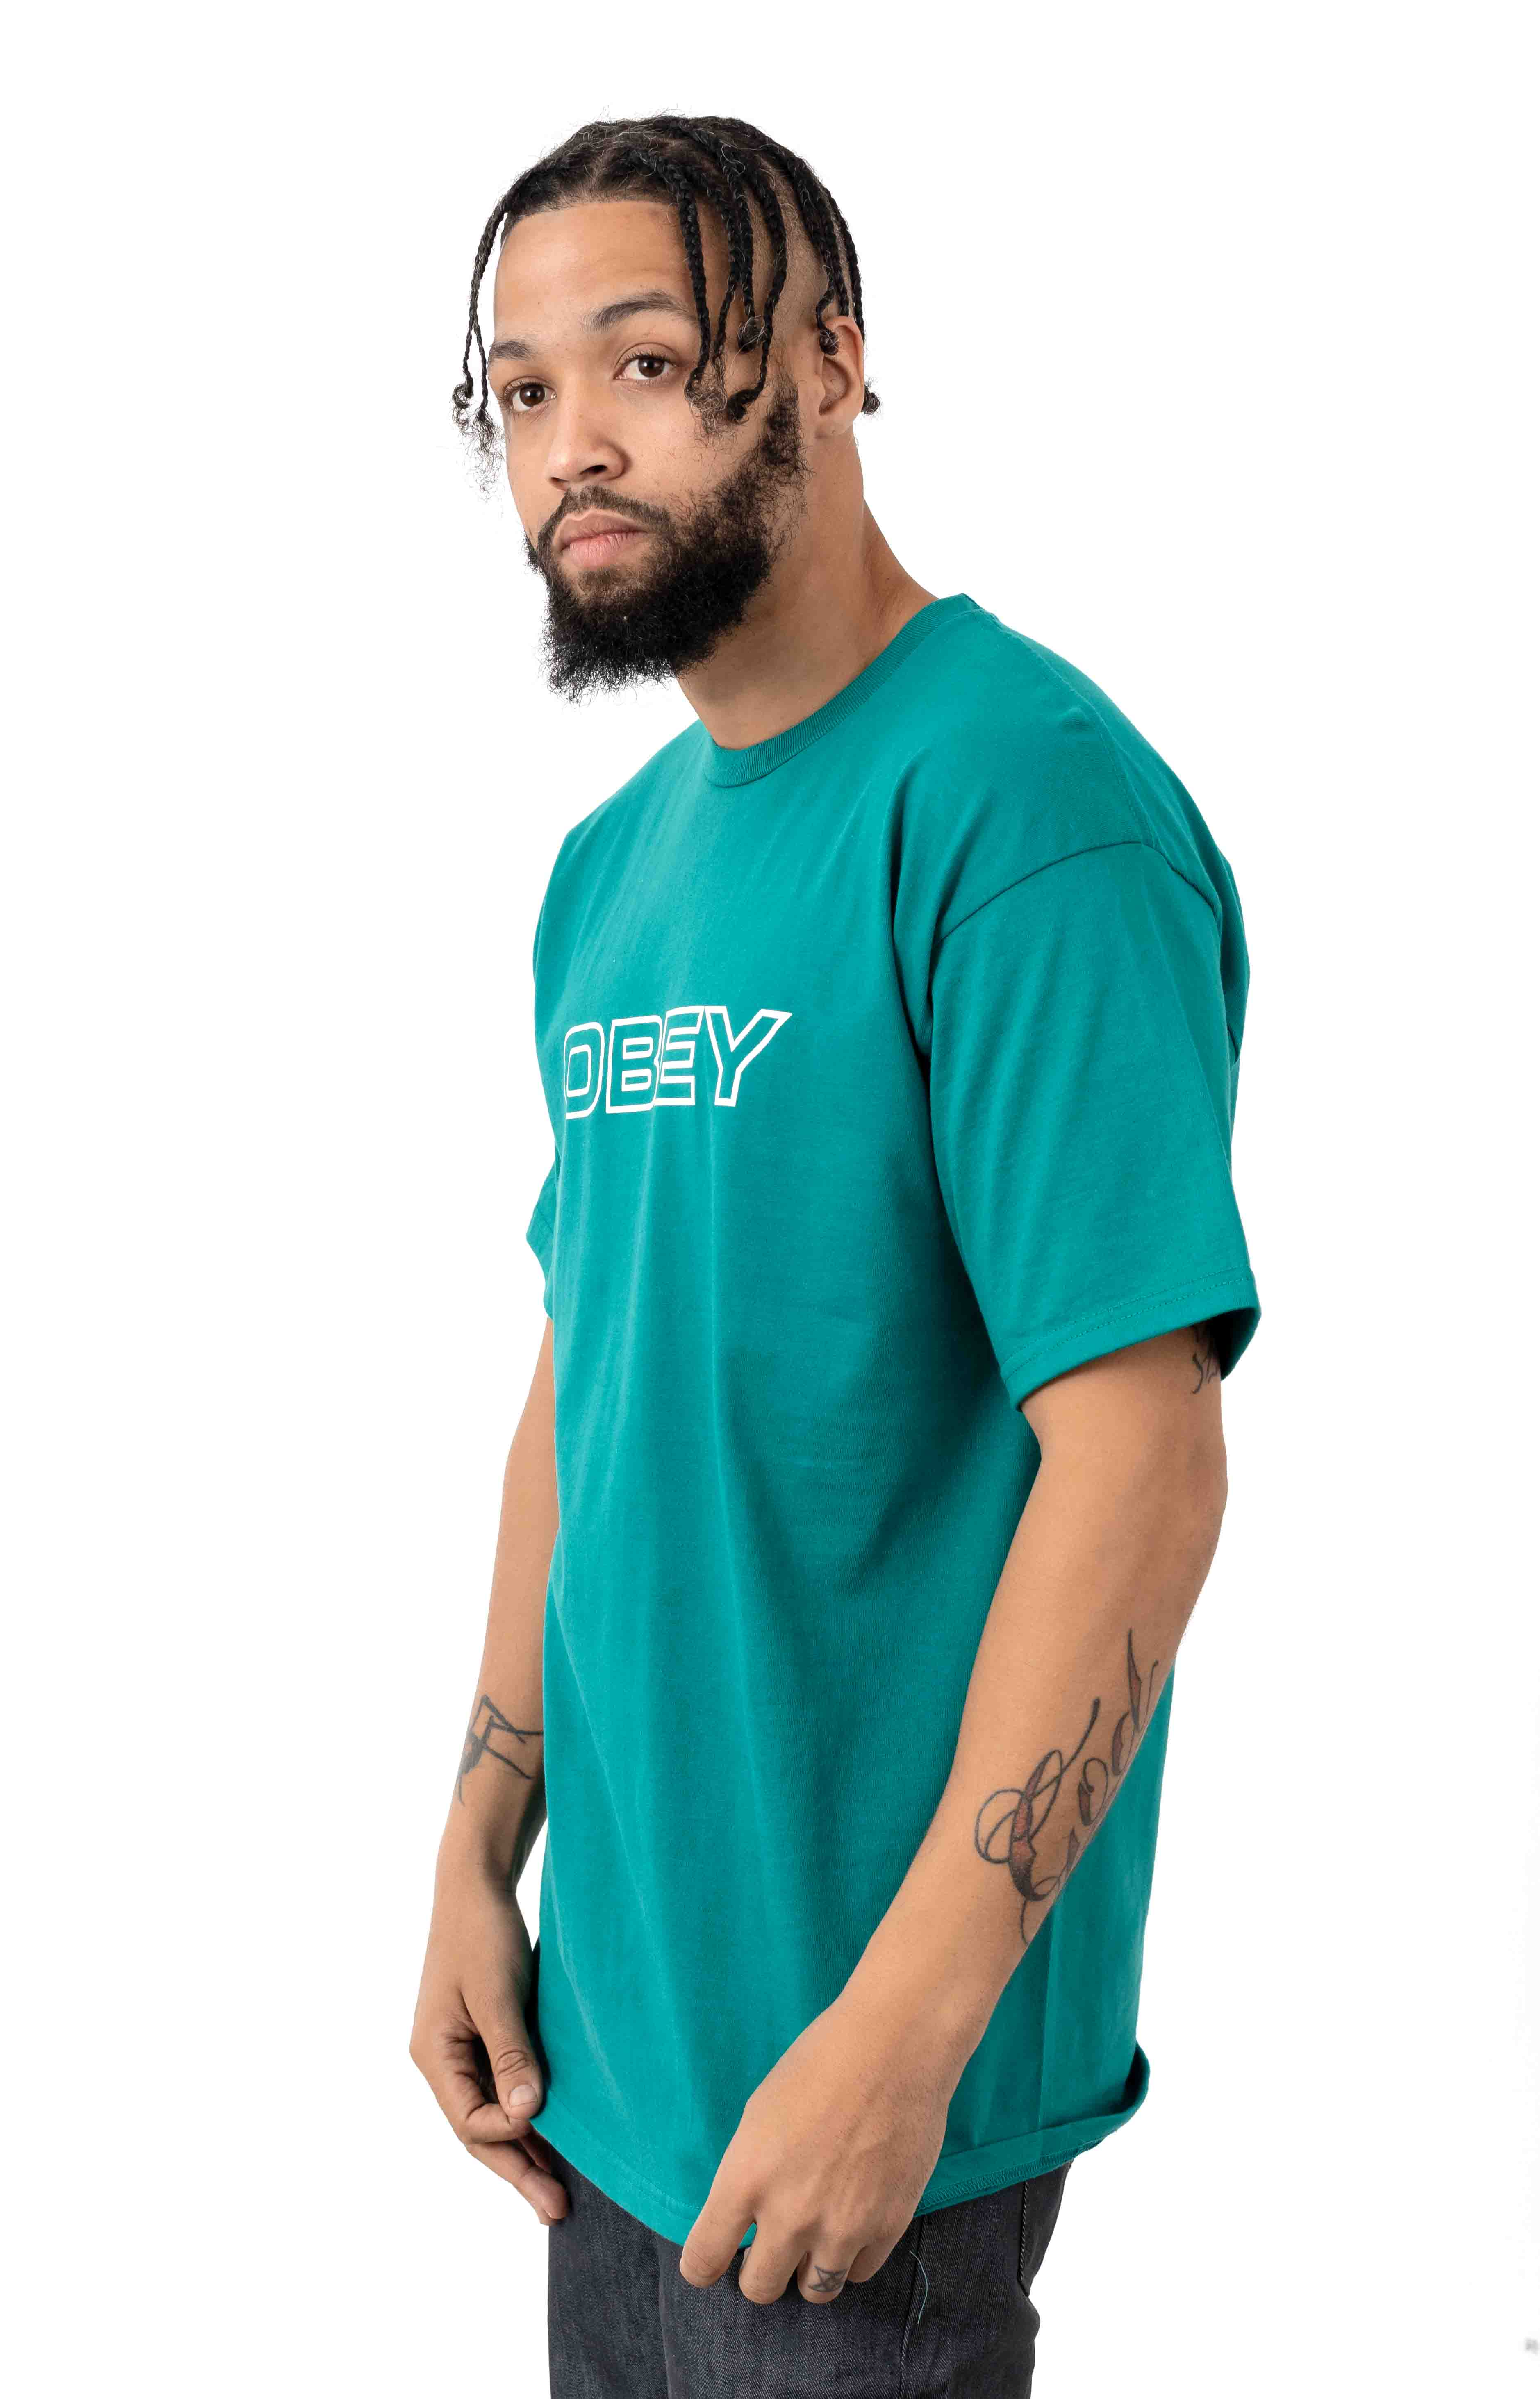 Ceremony T-Shirt - Teal 2